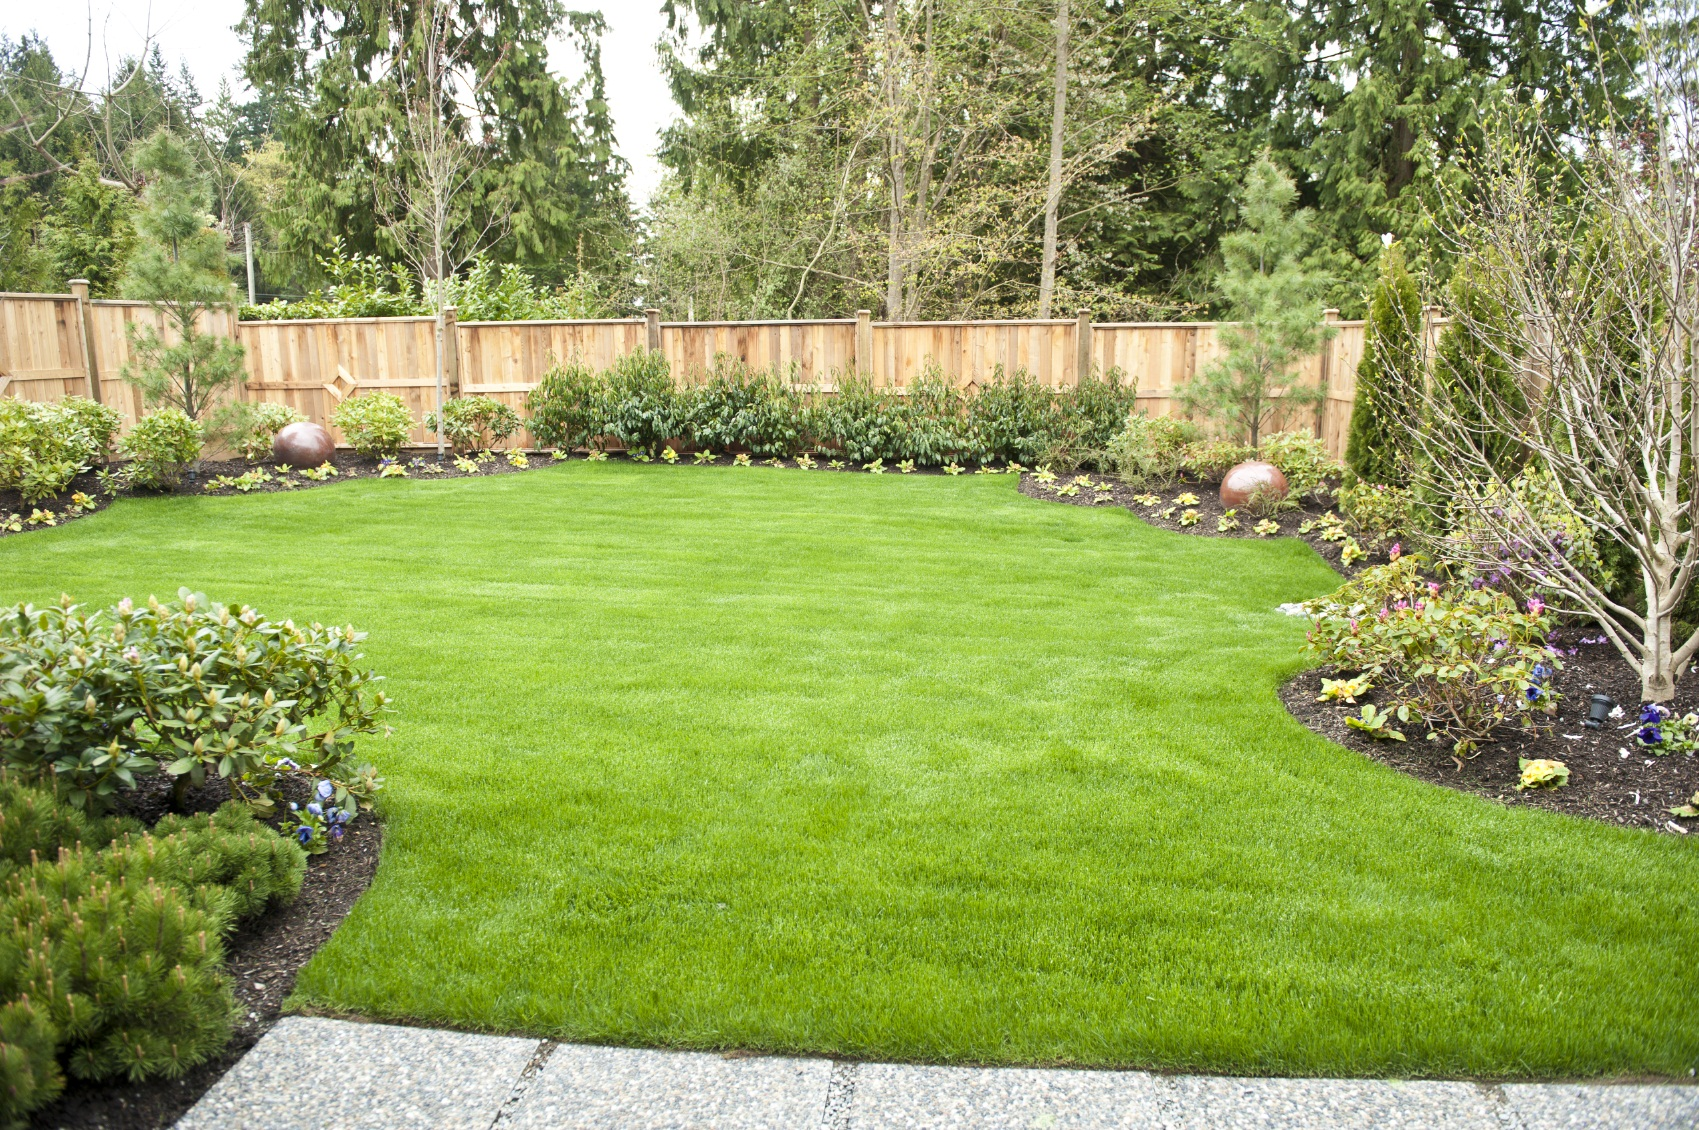 Garden in my backyard wordreference forums for Residential landscaping